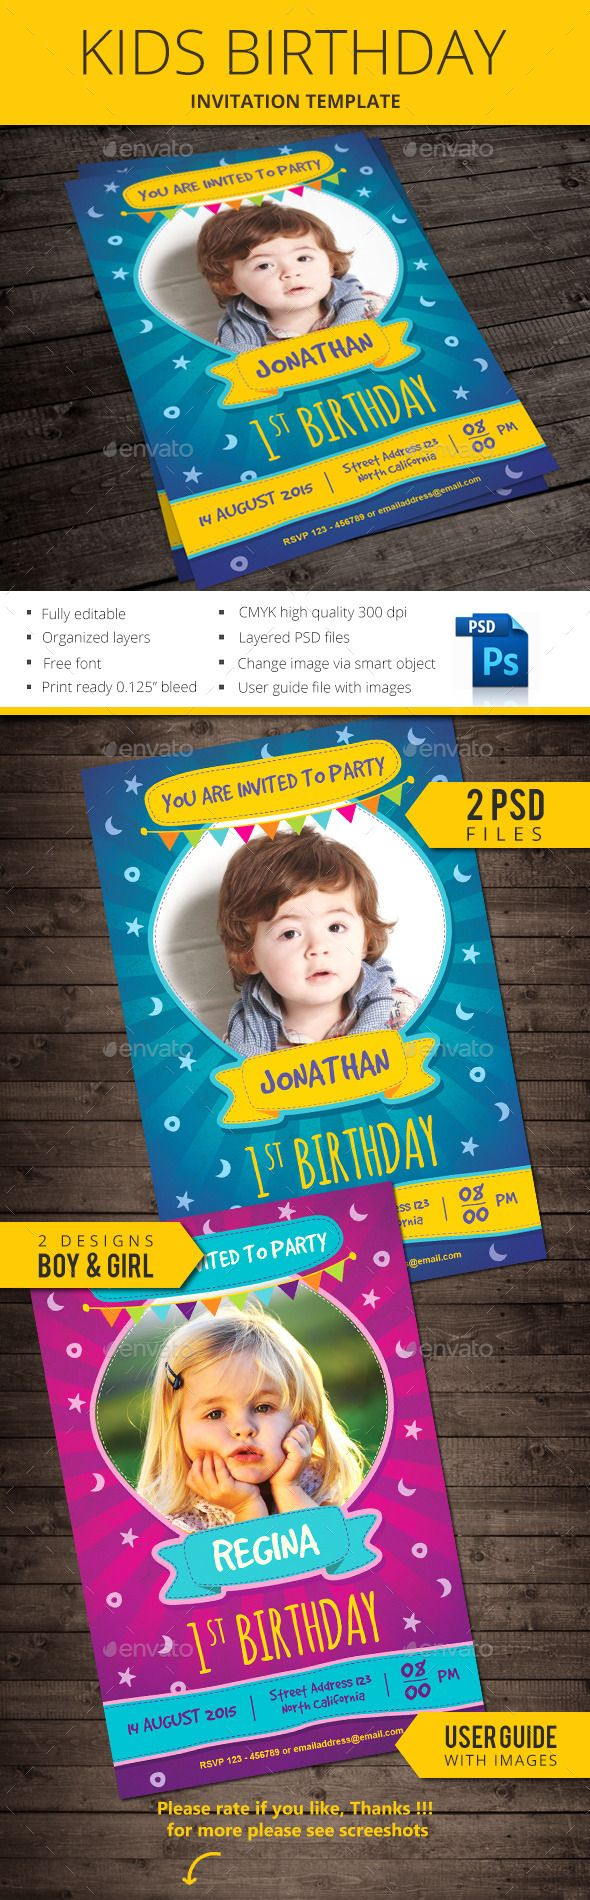 Kids Birthday Invitation | Edit text, Template and Flyer printing